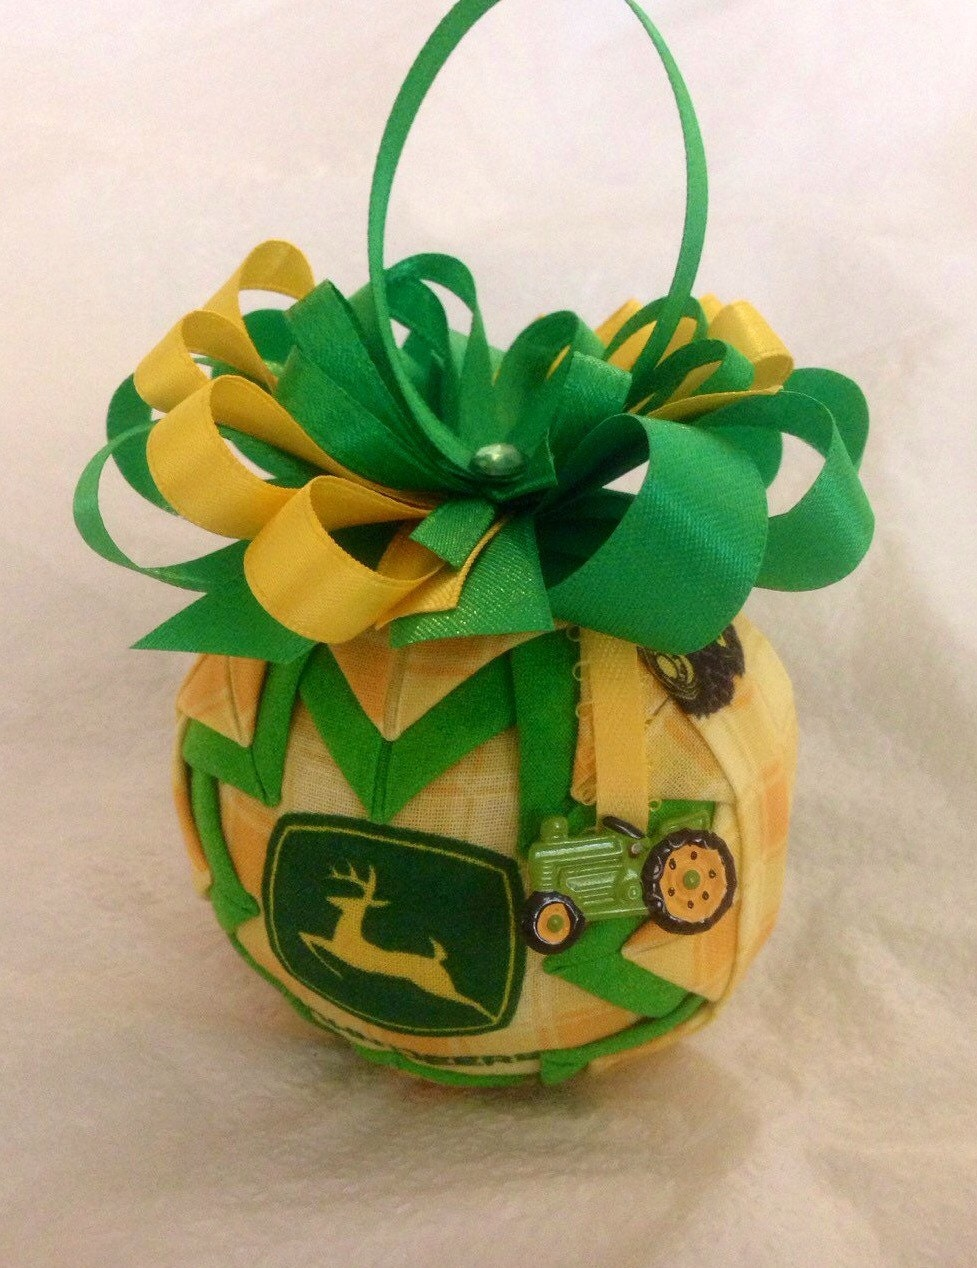 John Deere Inspired Ornament Quilted Christmas Ornament | Etsy